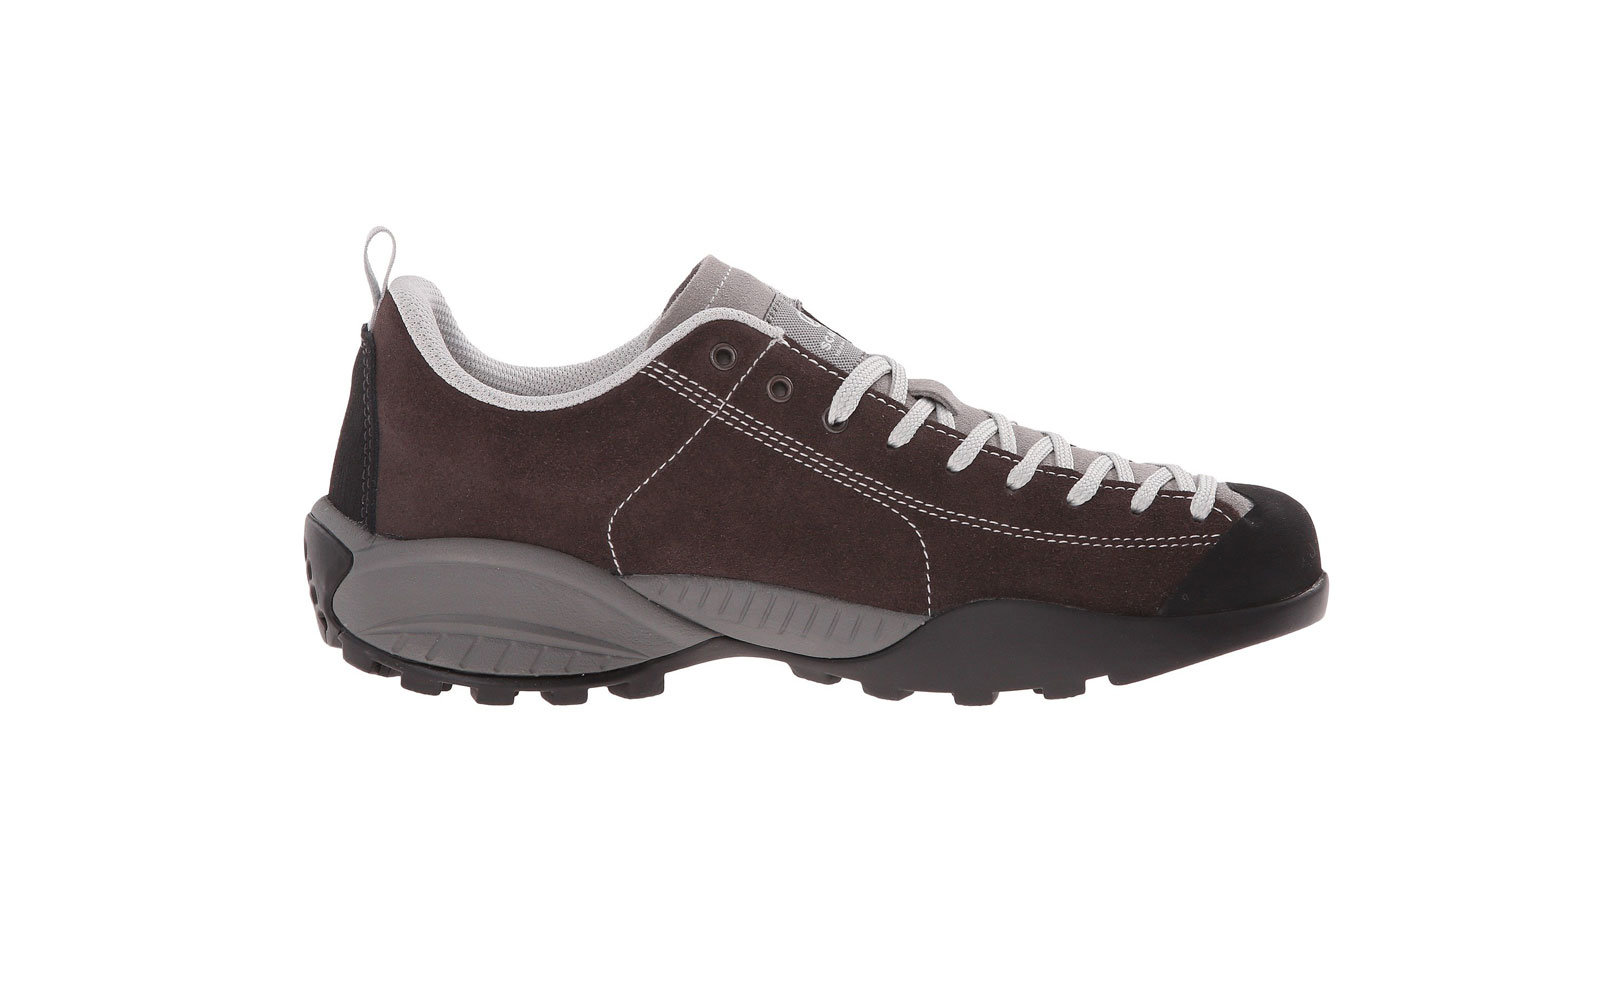 buy cheap deals free shipping get to buy The Scapra Shoes Modern Style Walking Shoes Black Running Shoes high quality for sale Cheapest cheap online iBLvDbXVy